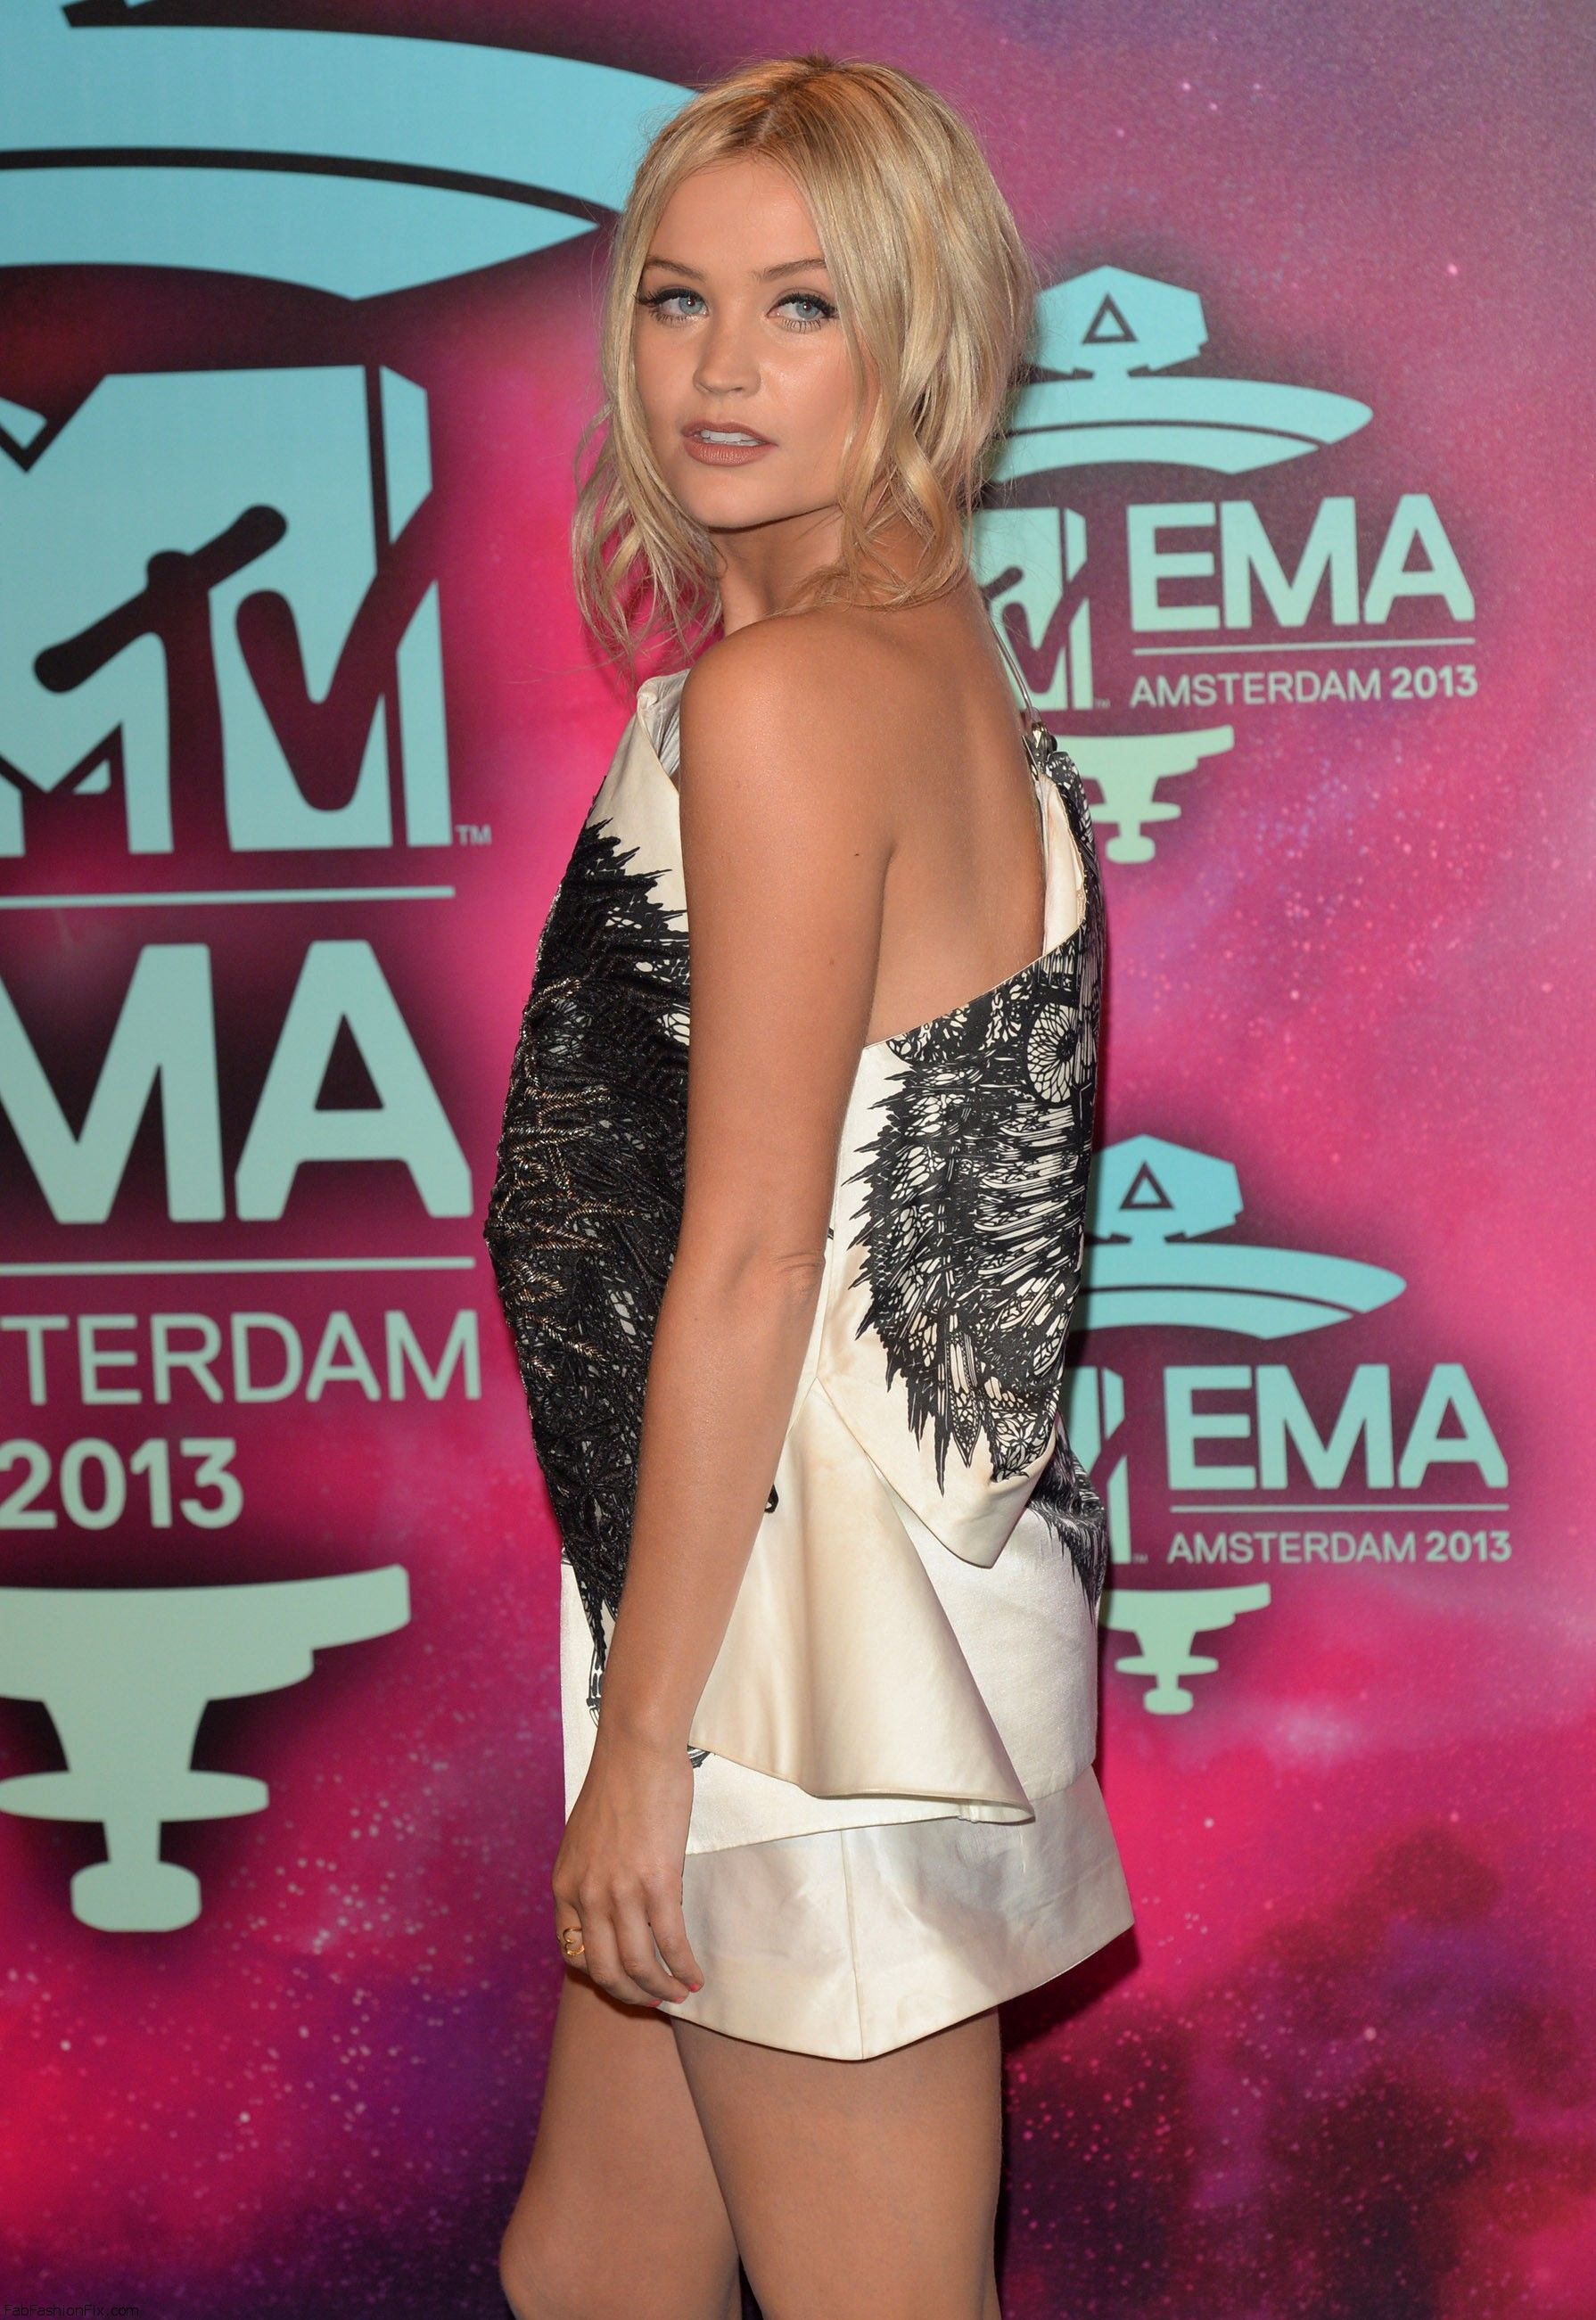 celebrity-paradise.com-The Elder-Laura Whitmore _6_